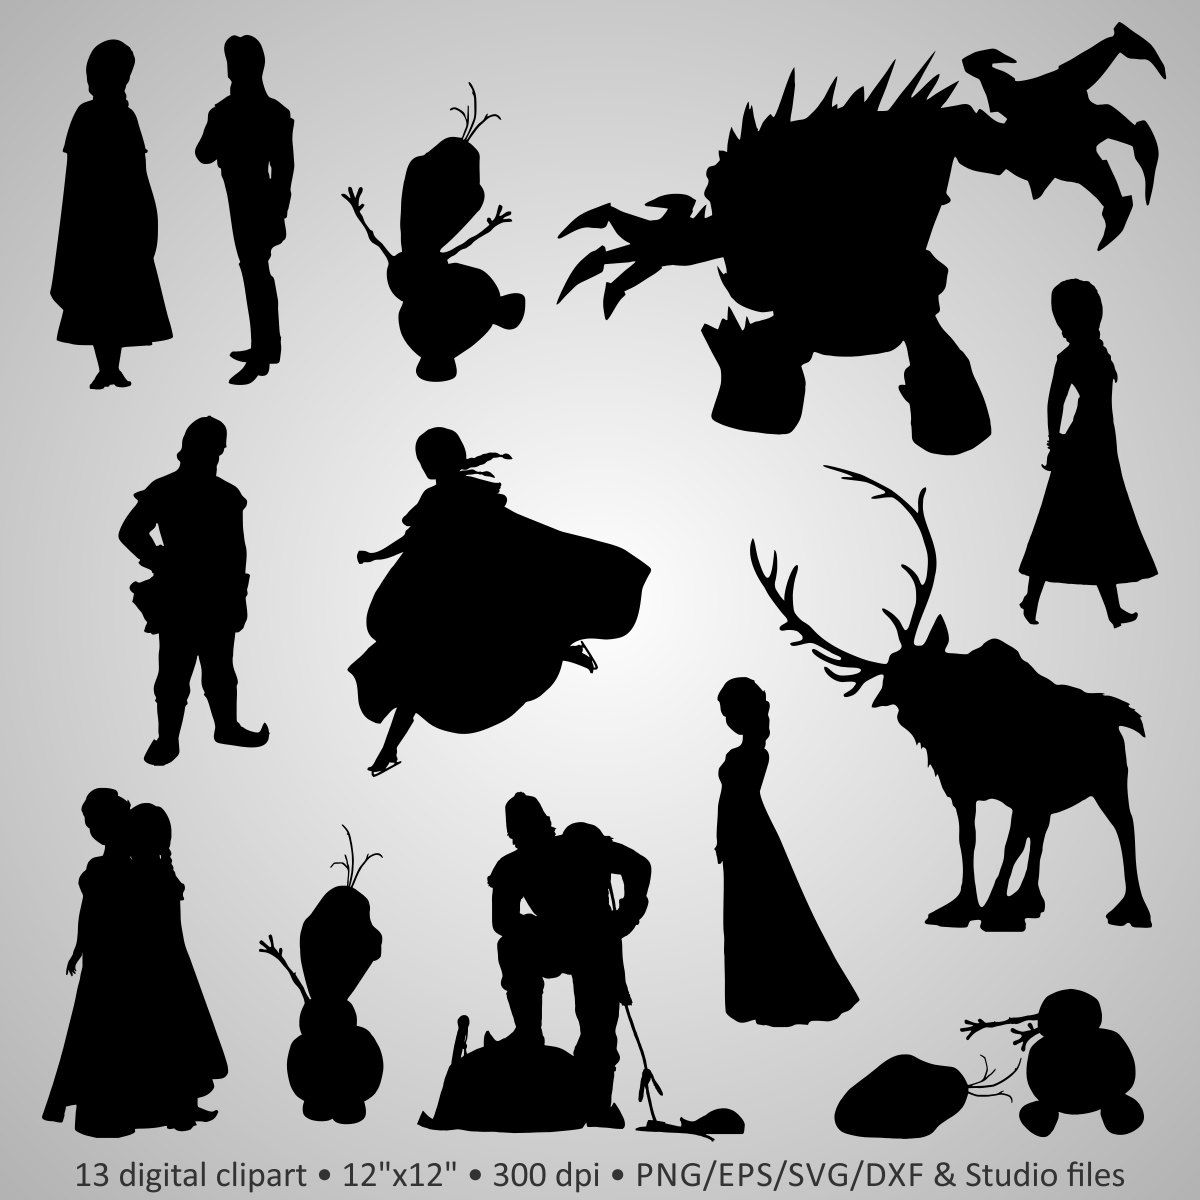 Olaf Silhouette - Google Search